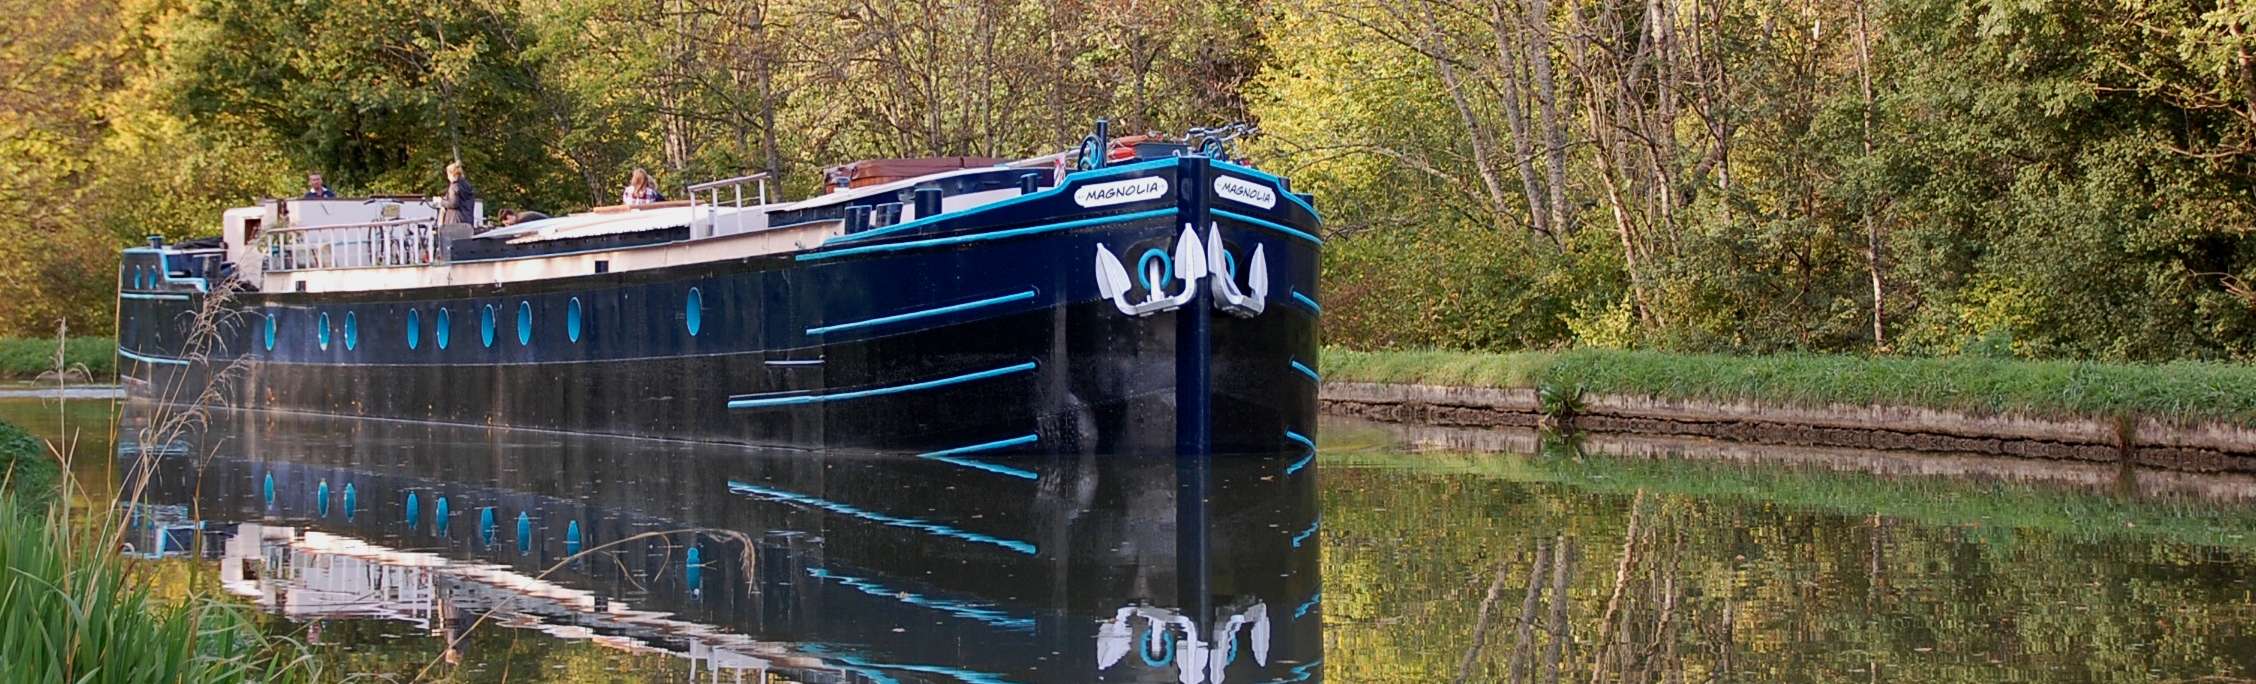 Barge Cruises In France and Europe: Photo Gallery for Barge Magnolia